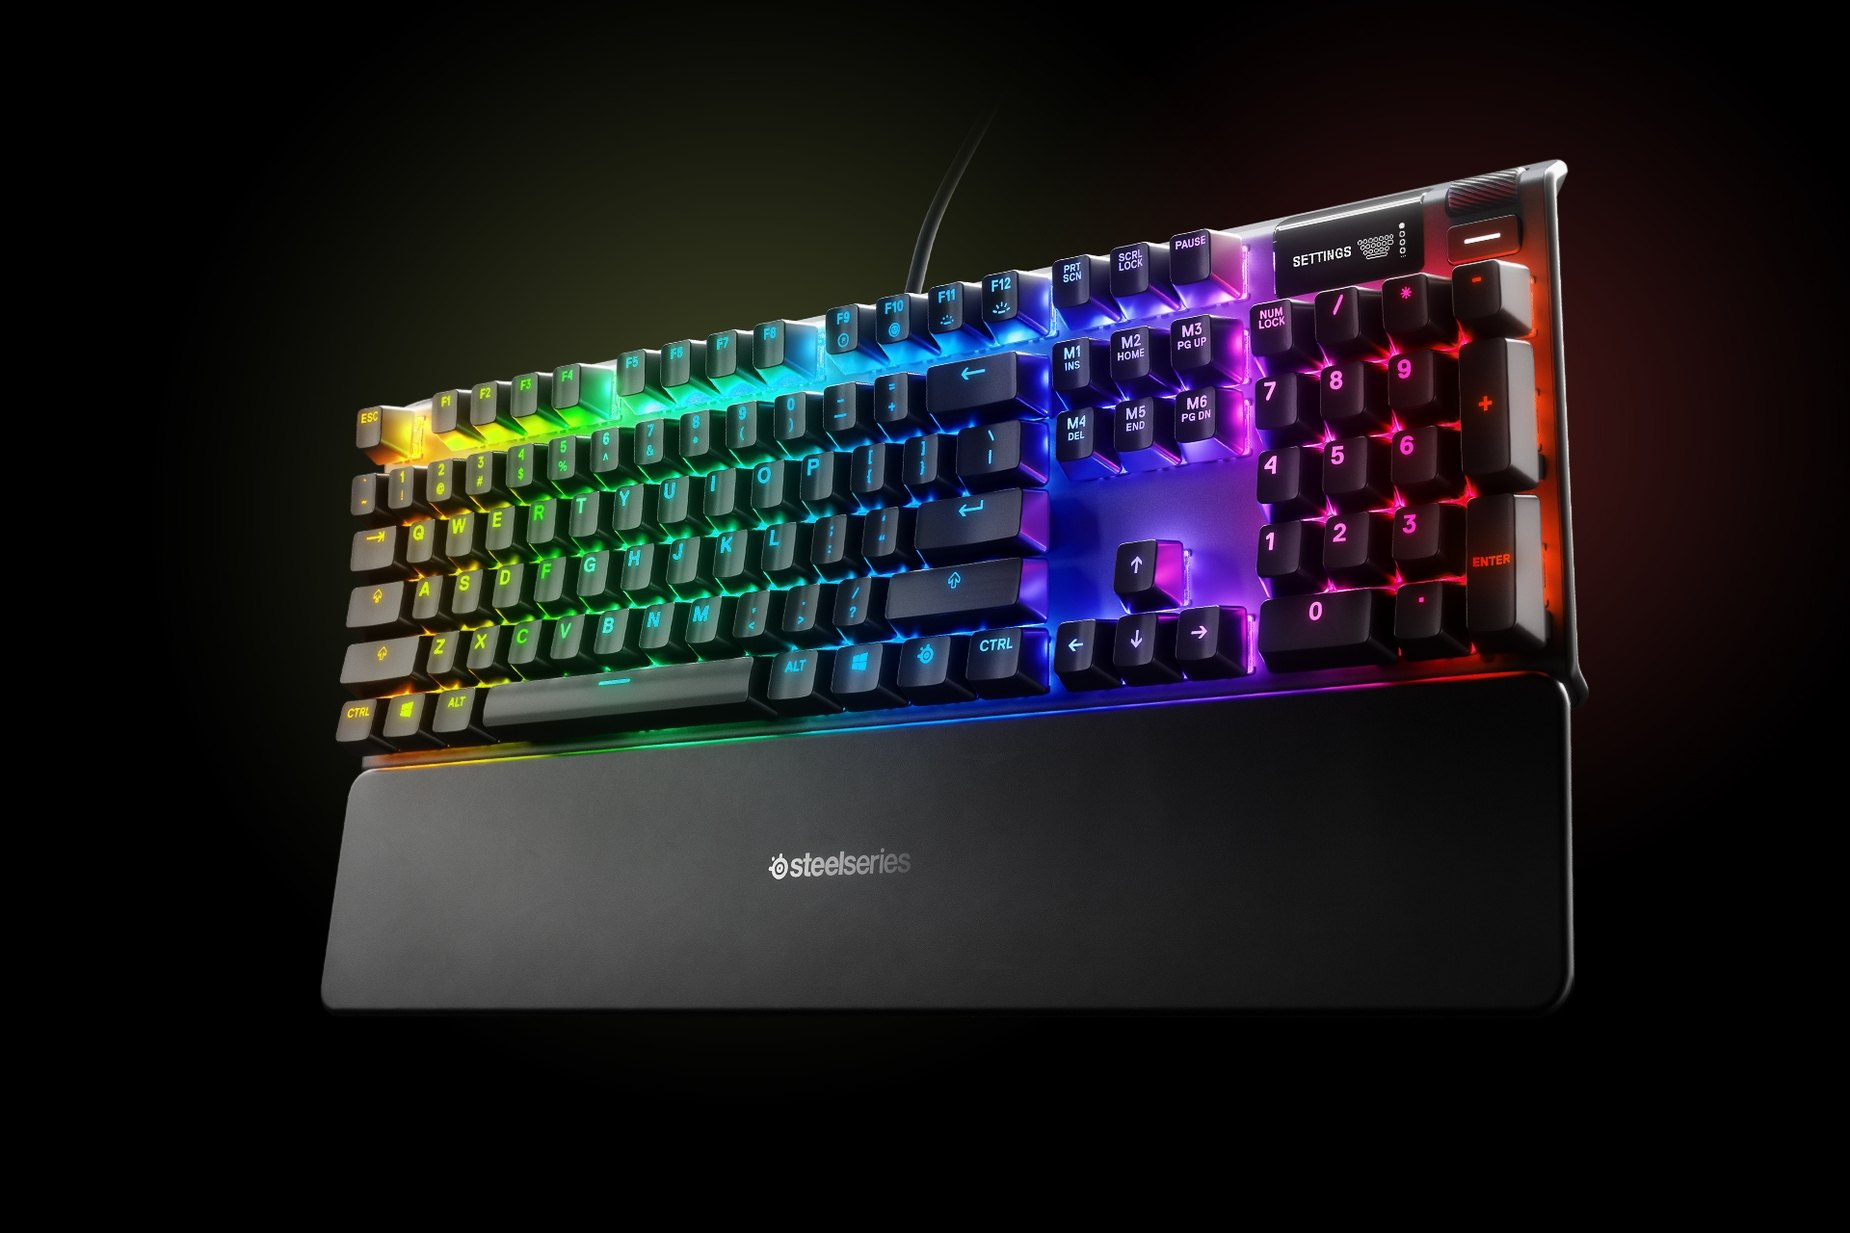 Немецкий - Apex 7 (Blue Switch) gaming keyboard with the illumination lit up on dark background, also shows the OLED screen and controls used to change settings and adjust audio